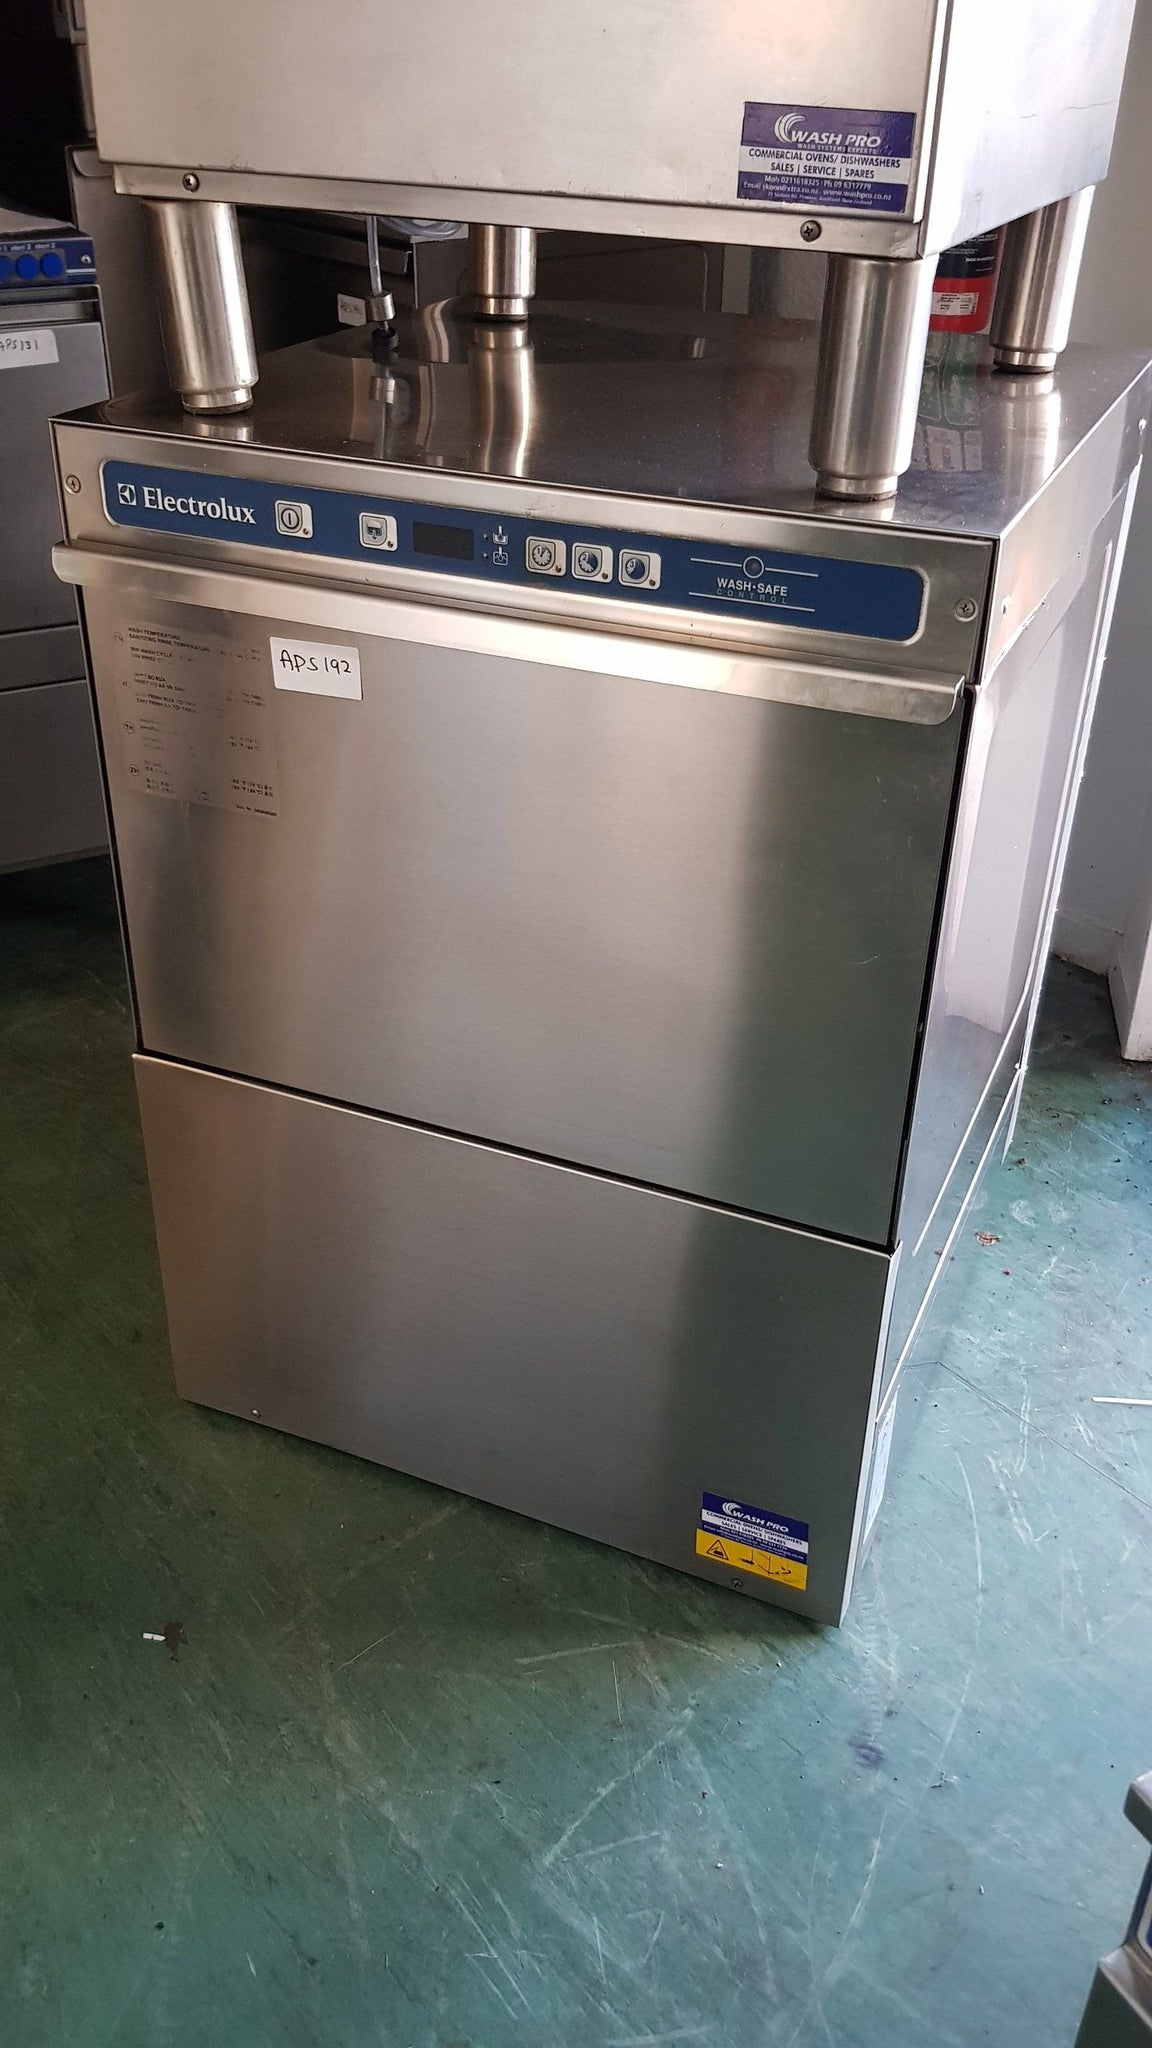 APS192 Electrolux undercounted Commercial dishwasher with Warranty  in Excellent condition - Washpro